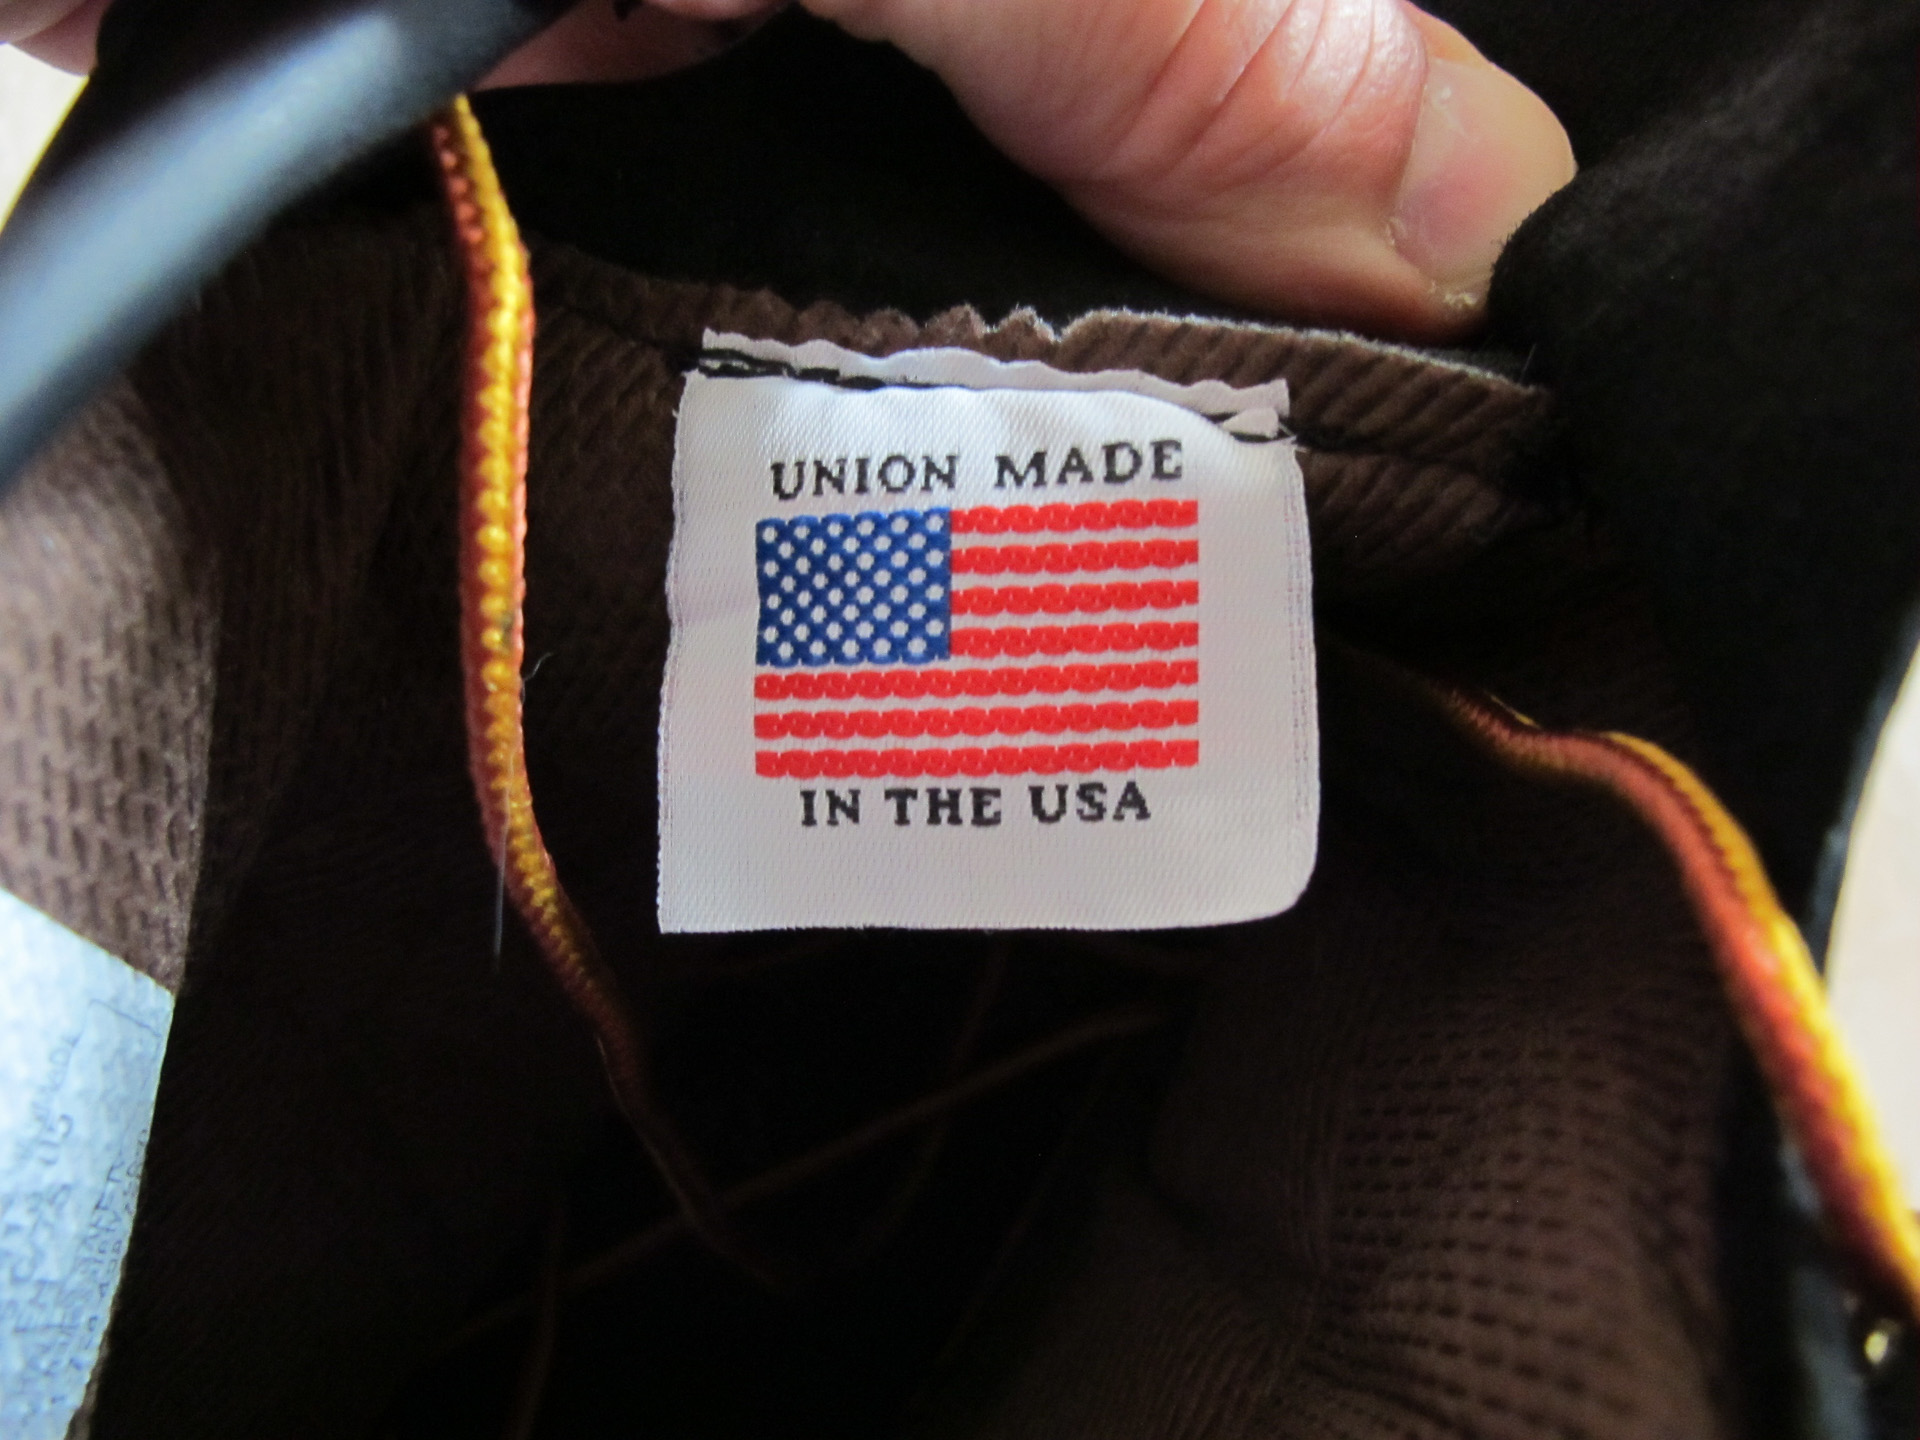 Union made in the USA tag